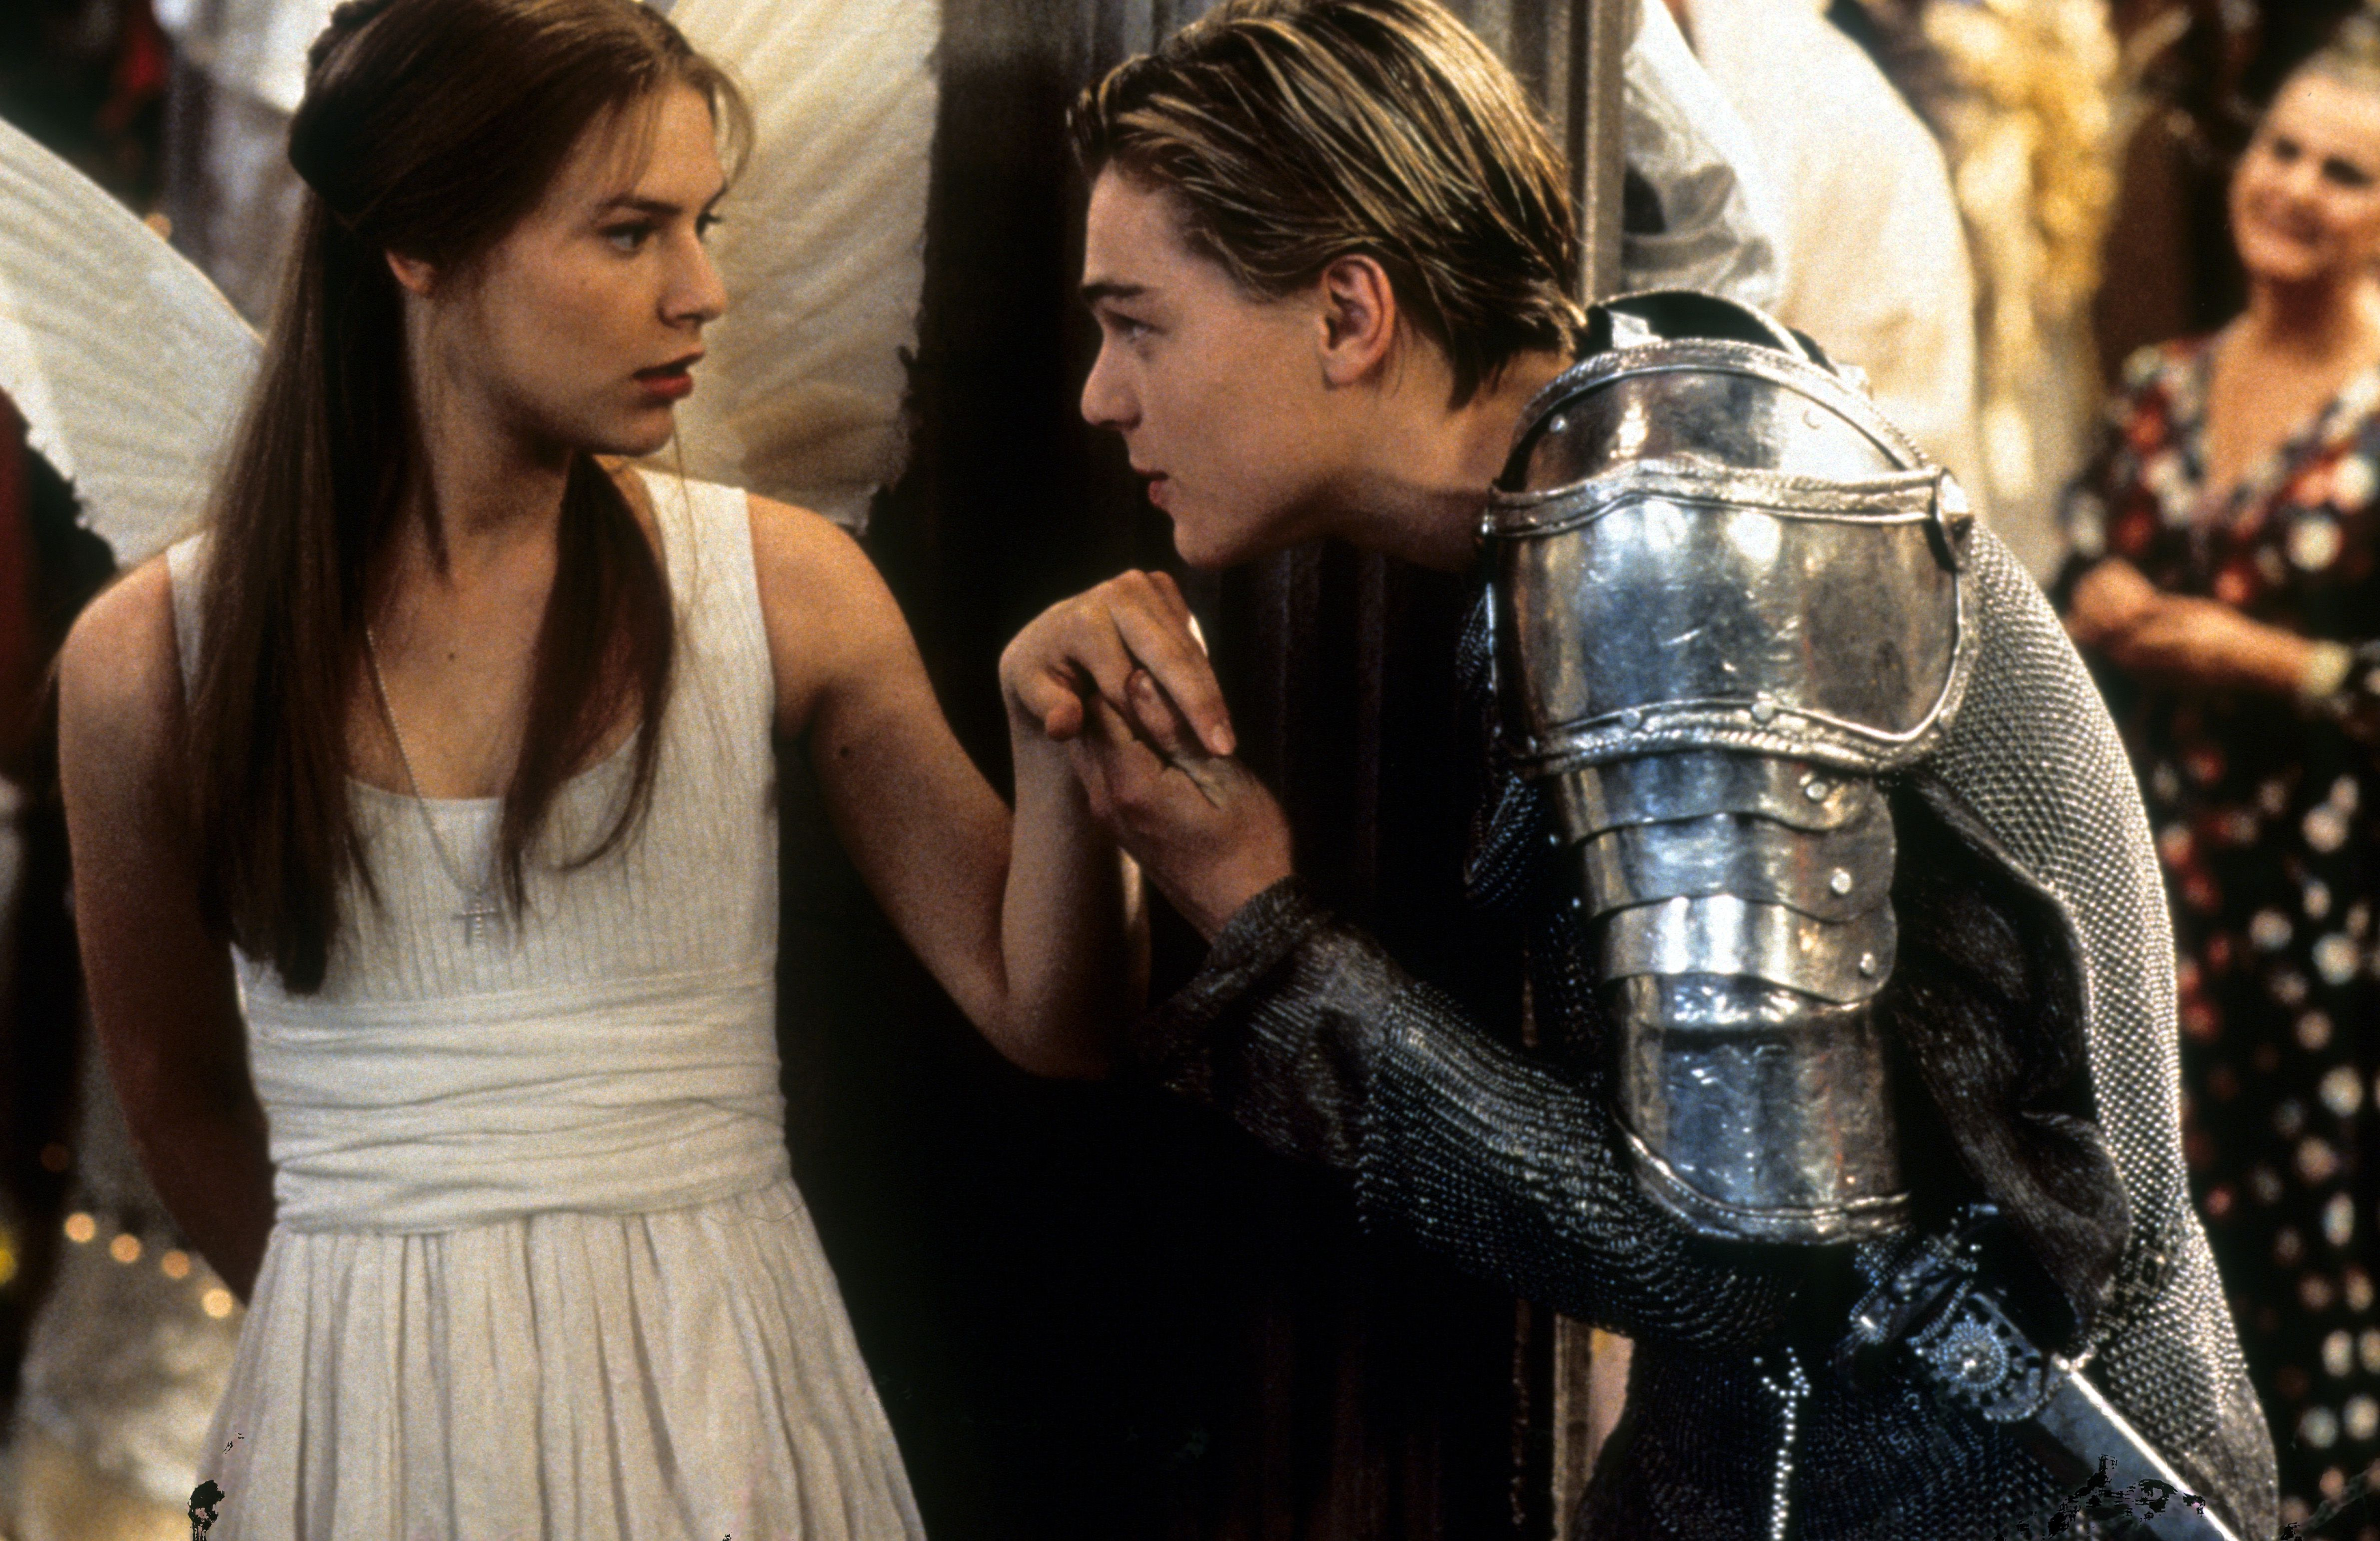 Love Themes in 'Romeo and Juliet'